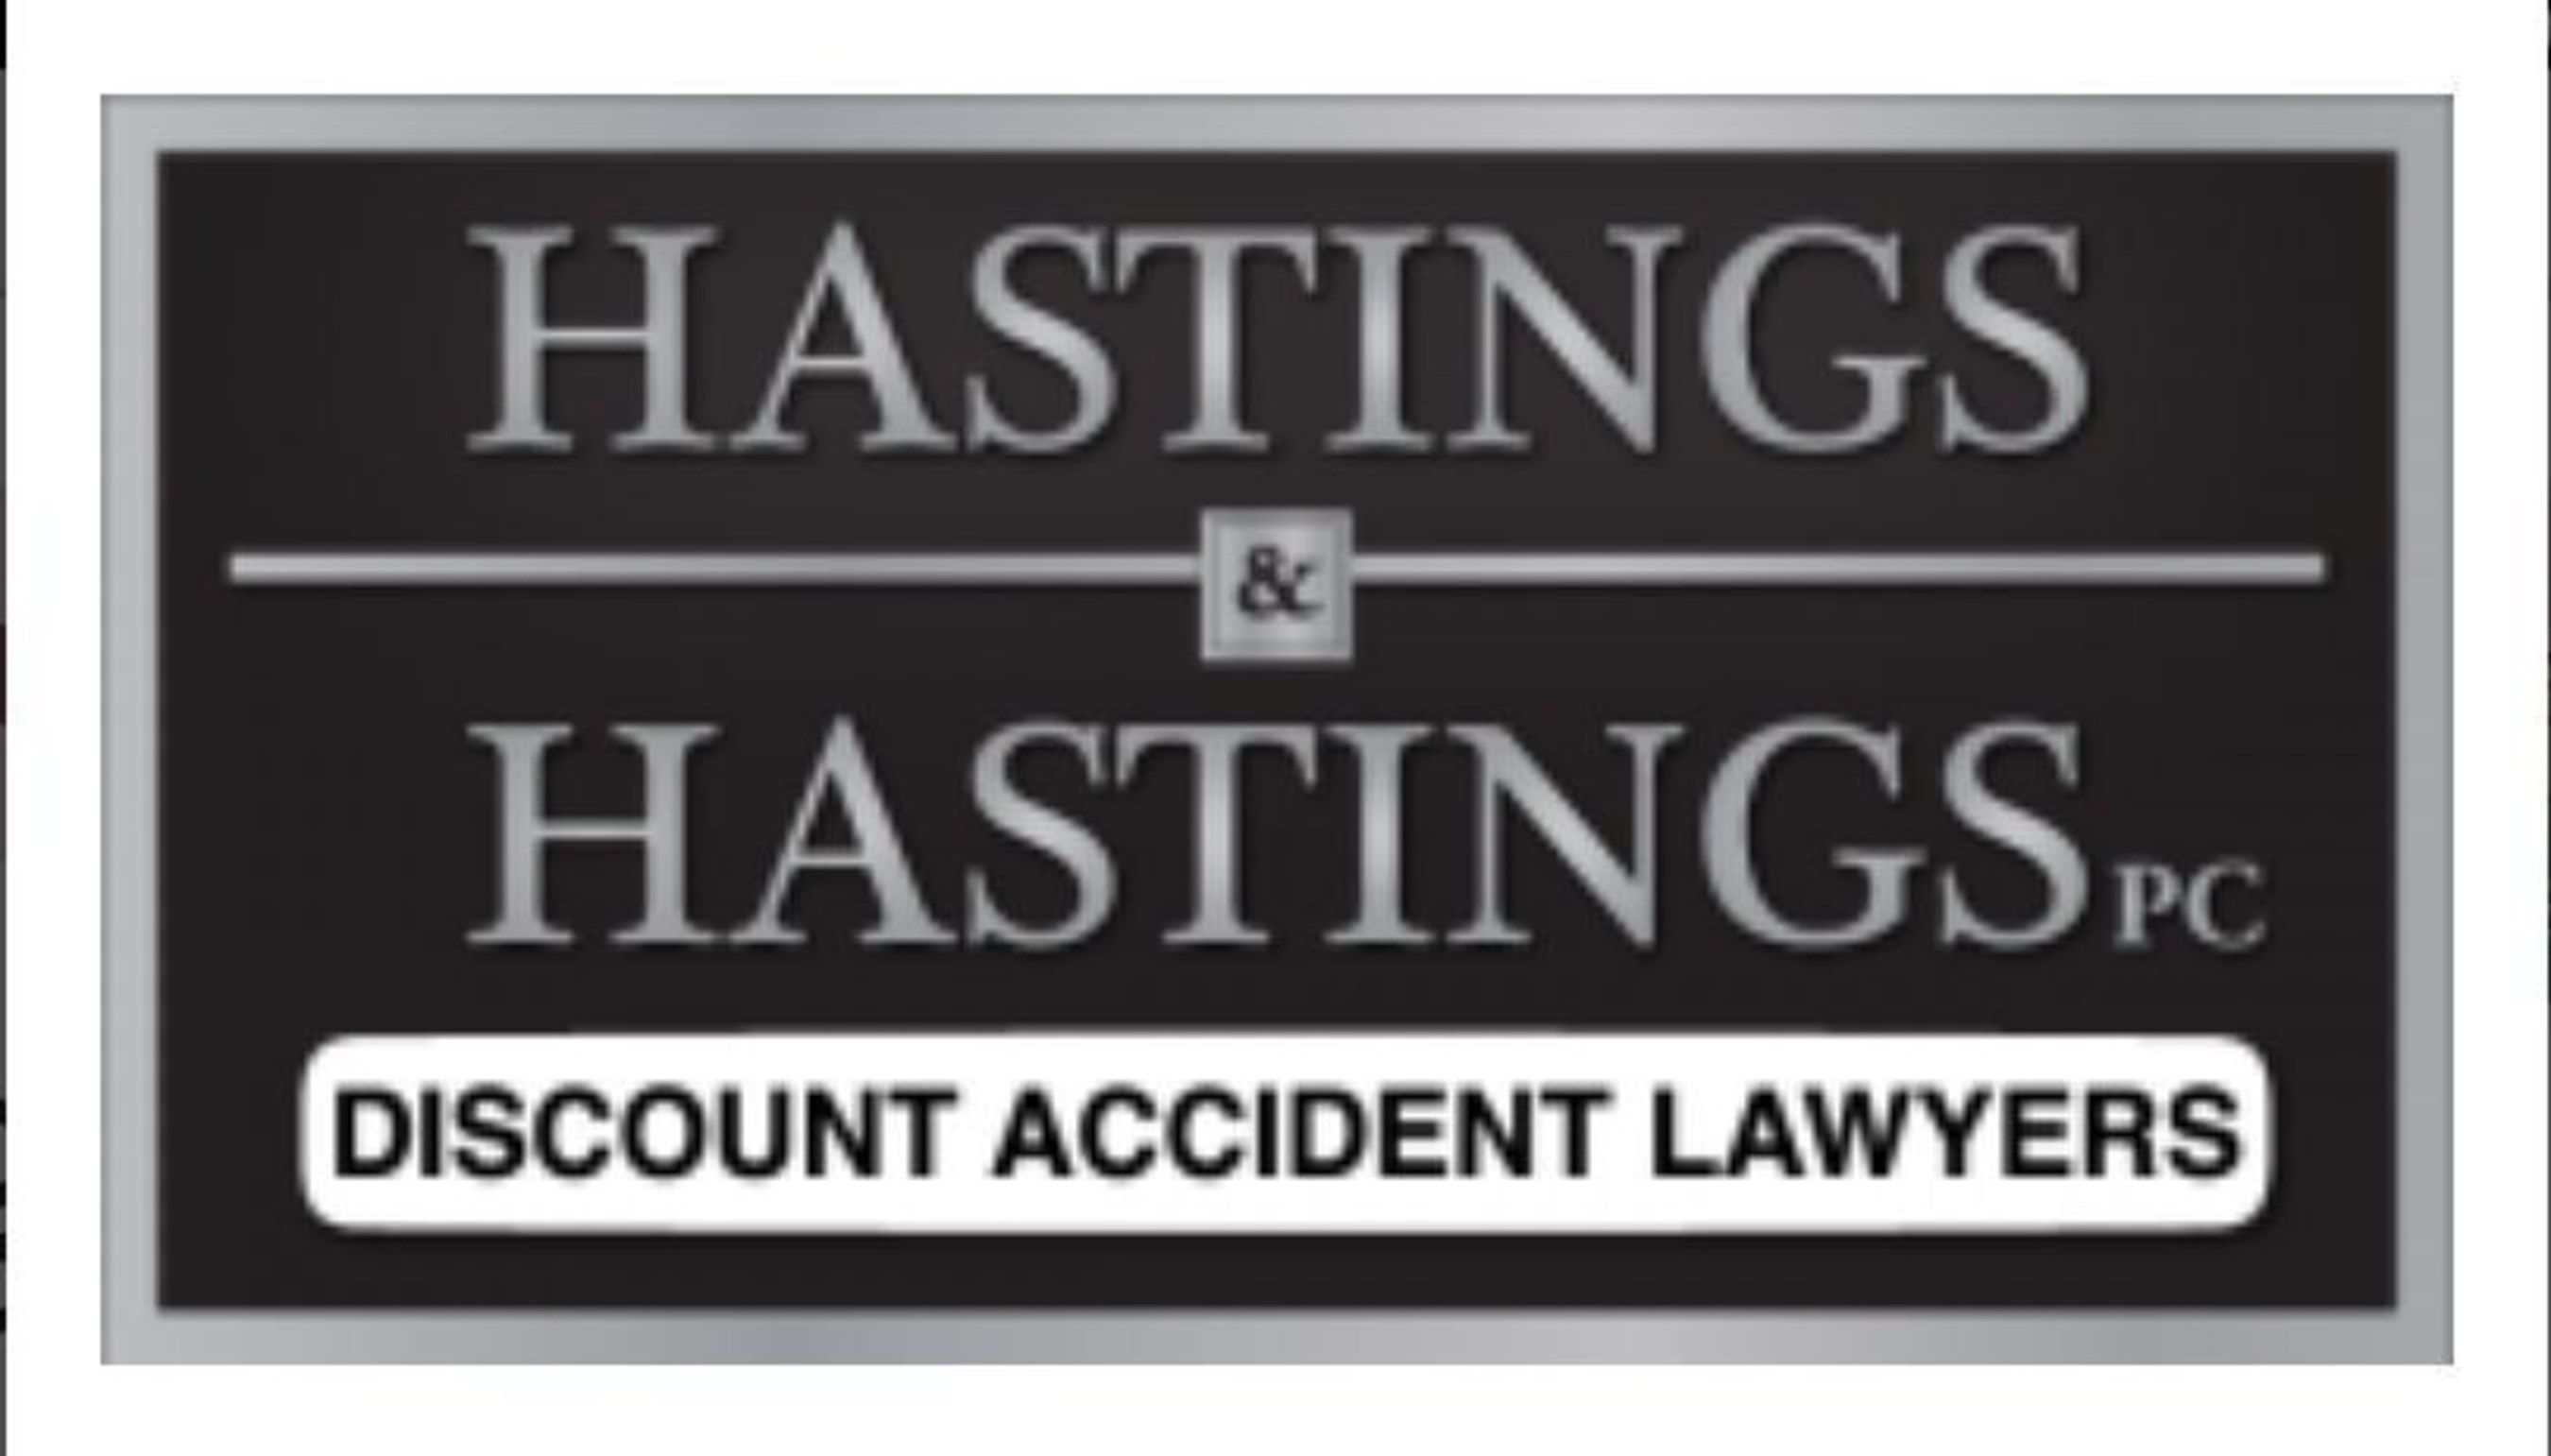 Defensive Driving Courses Lauded by Hastings and Hastings, Arizona's Discount Accident Lawyers